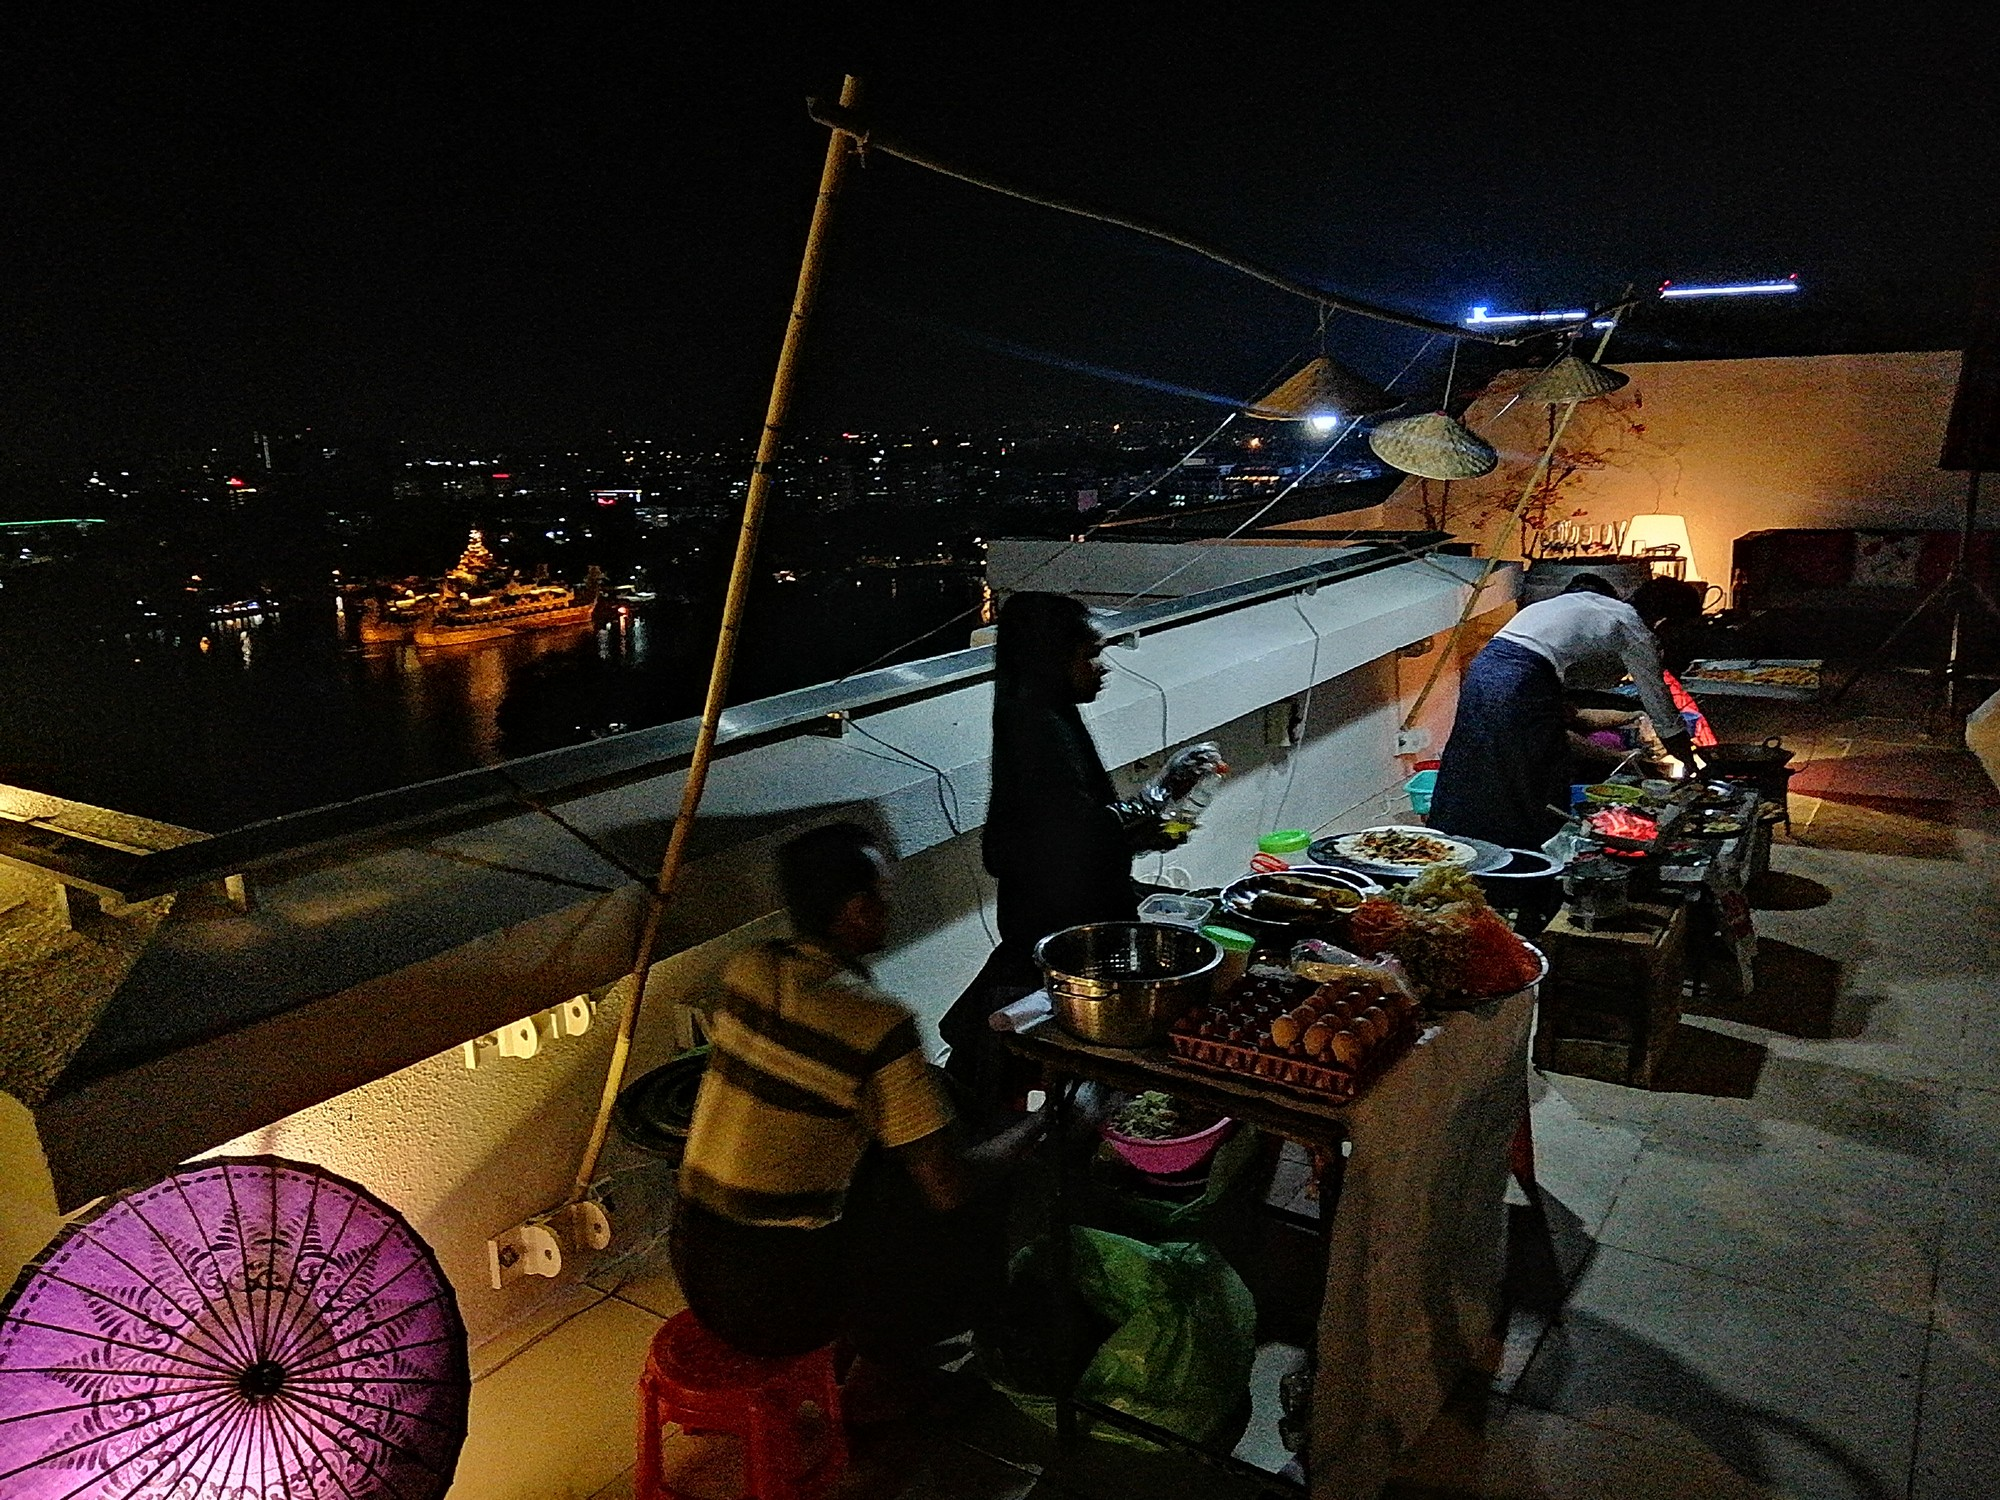 Street food catering in Yangon for roof top parties